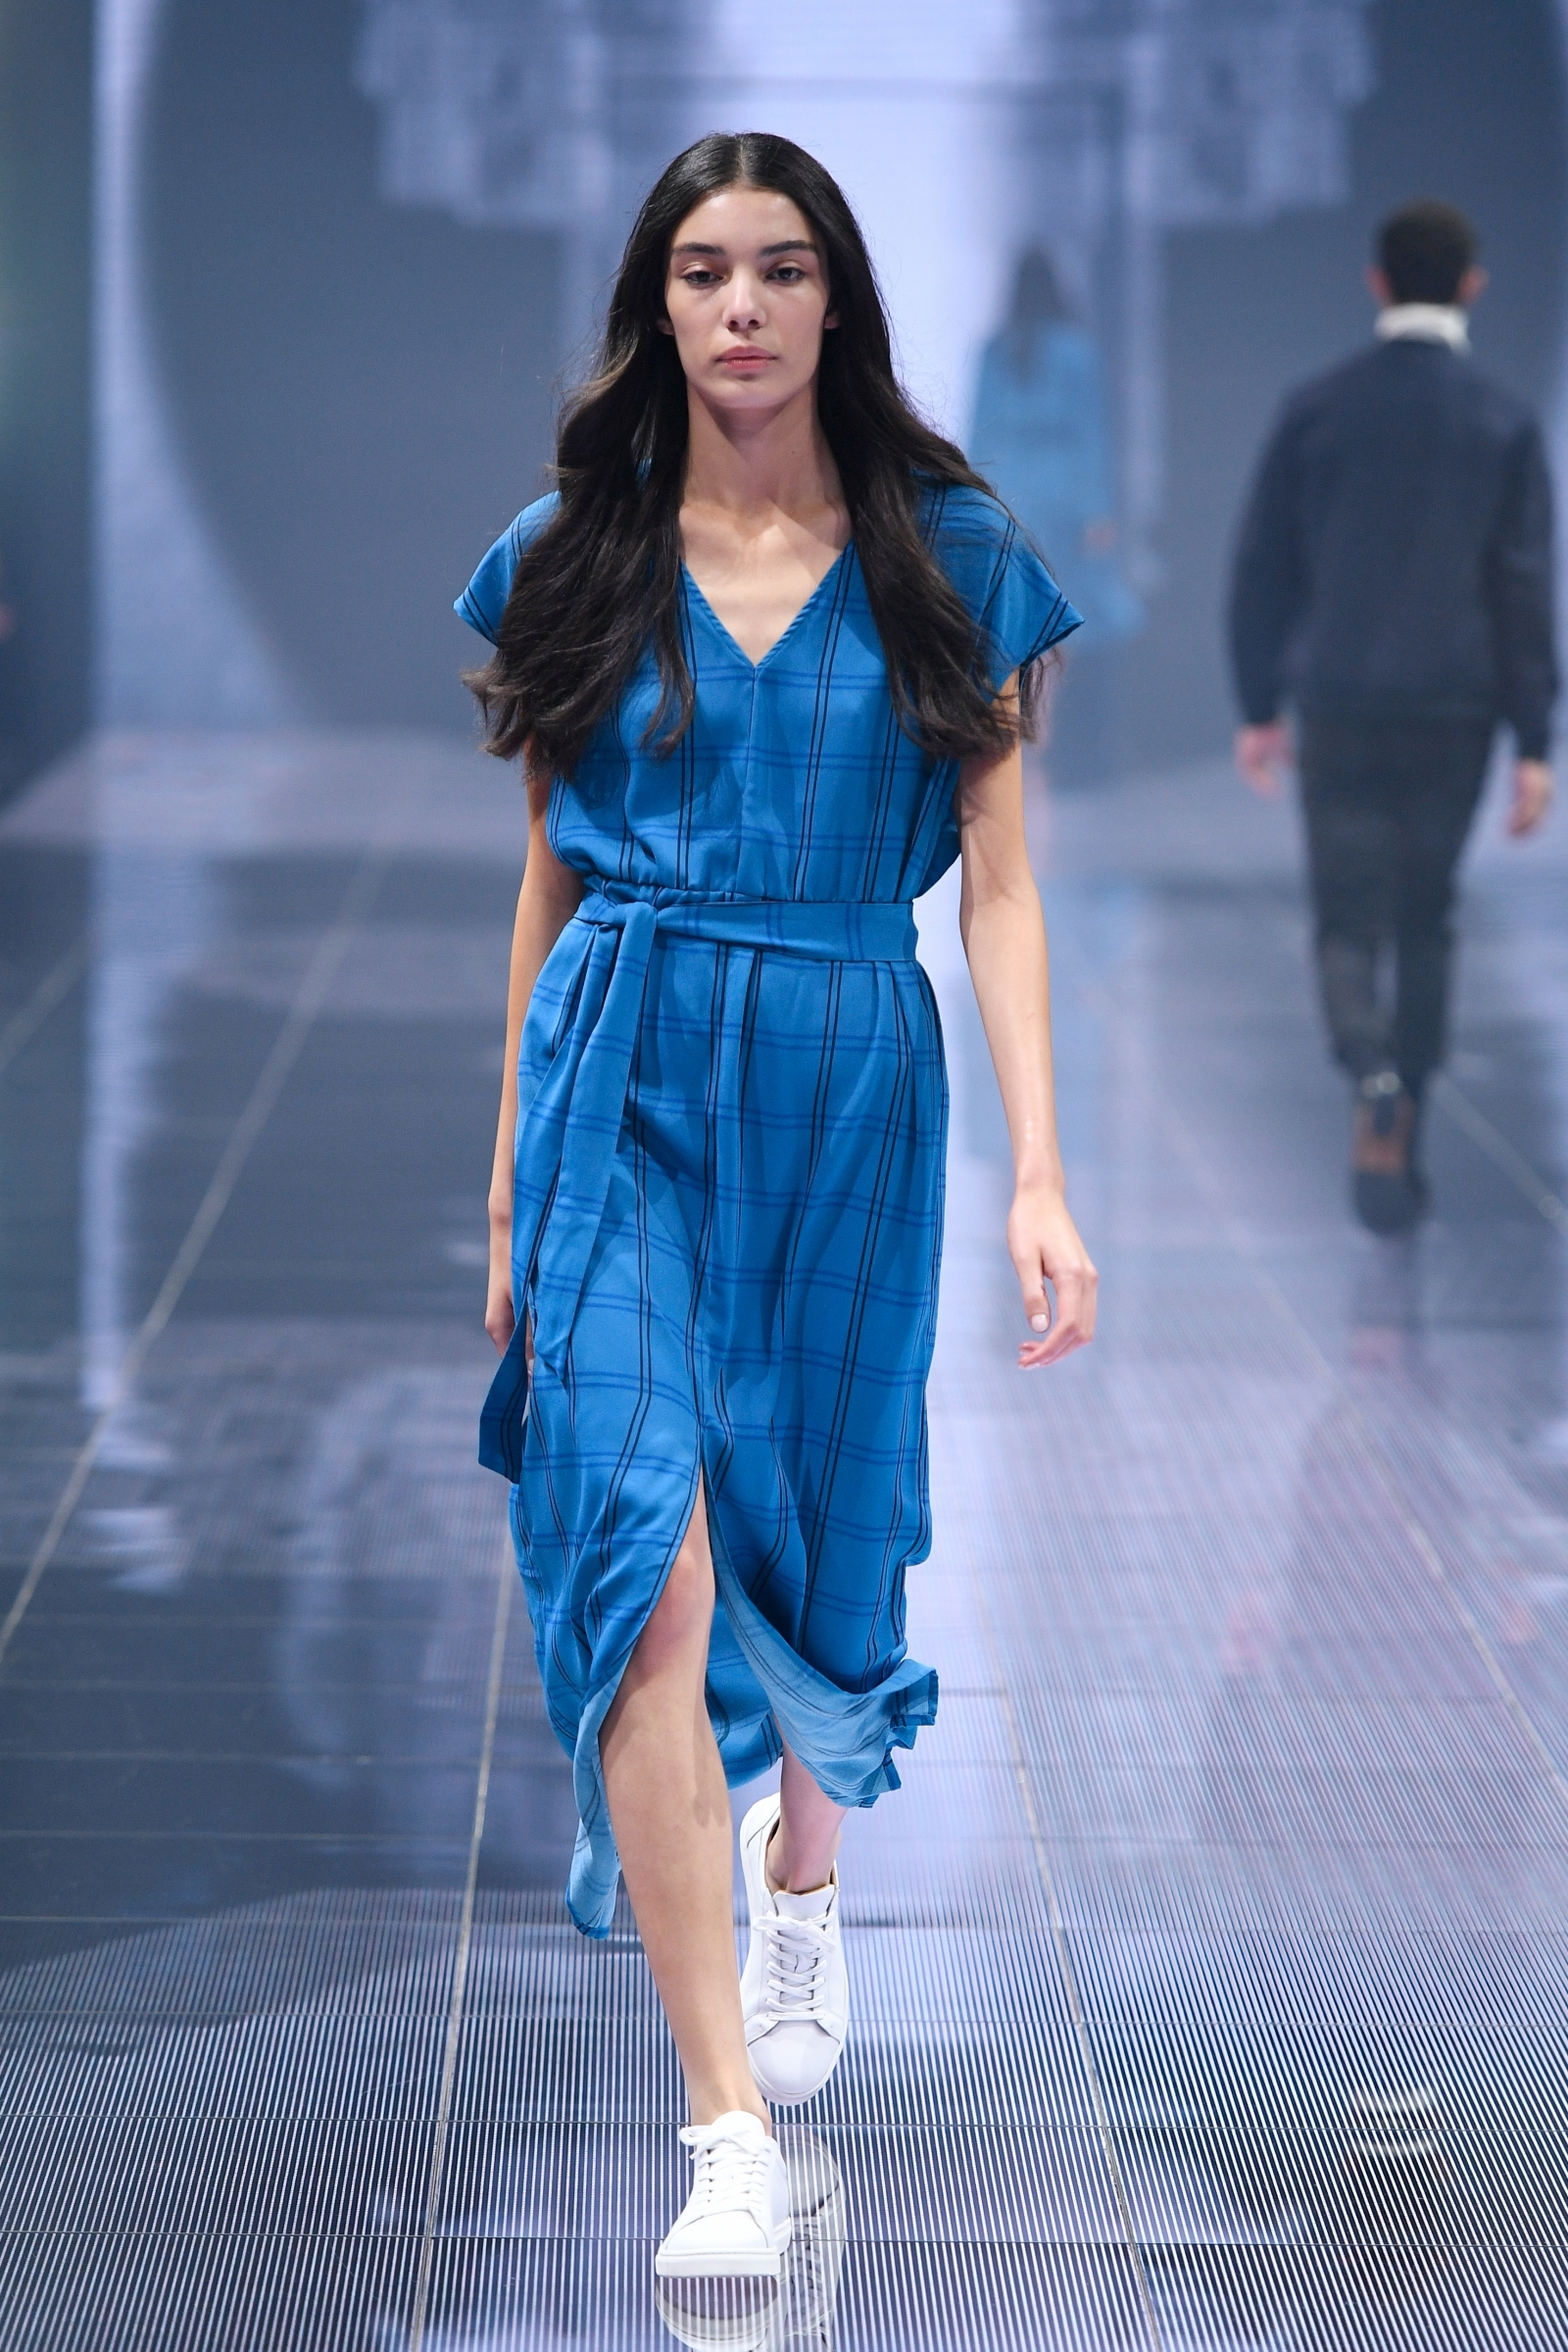 Models Under 21: Size Zero No More! LVMH And Kering Ban Super-skinny And